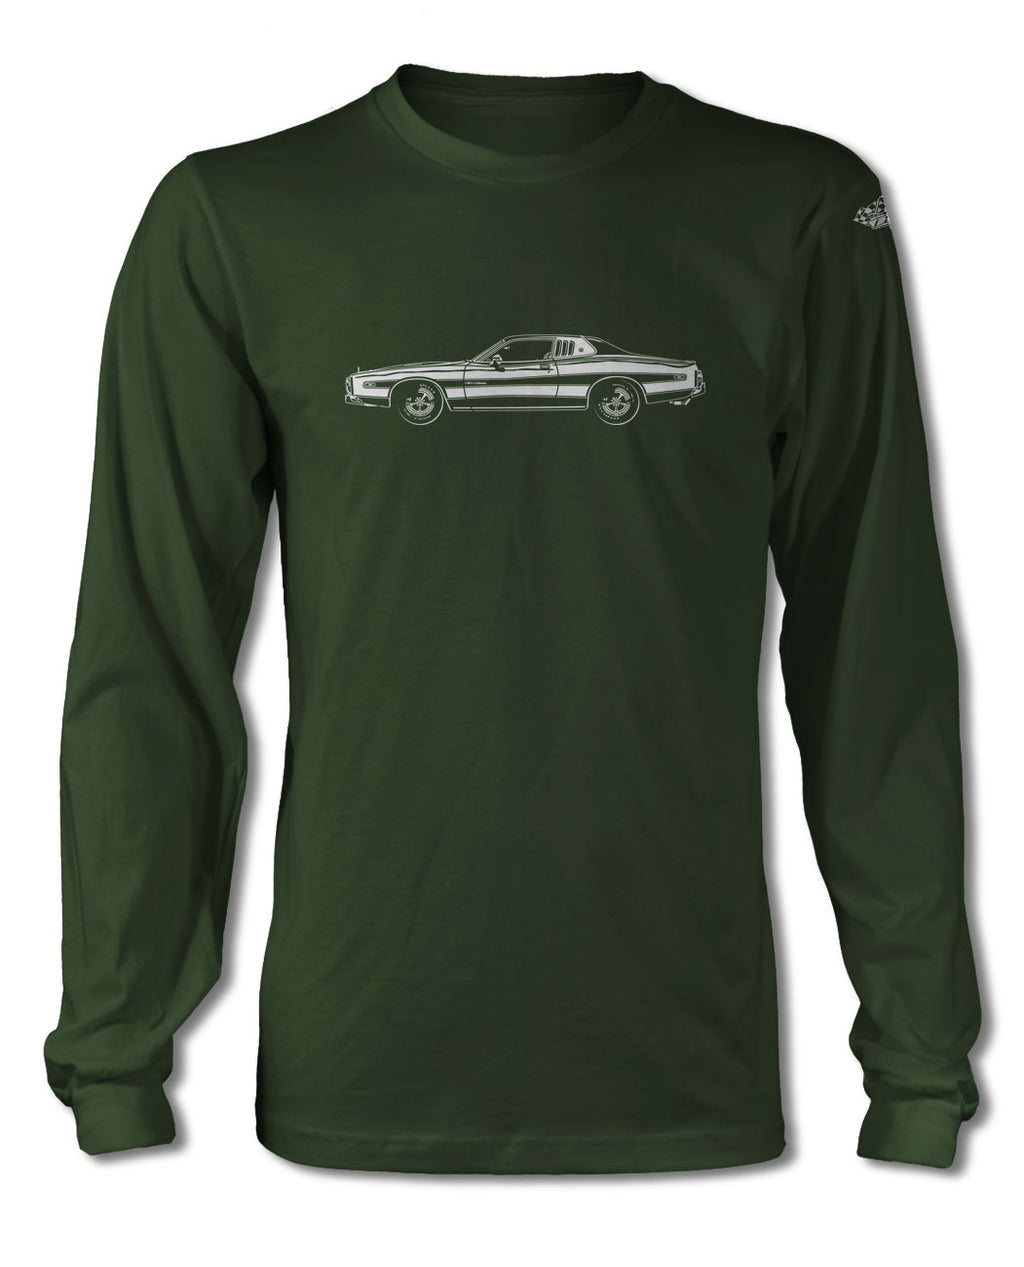 1973 Dodge Charger SE with Stripes Hardtop T-Shirt - Long Sleeves - Side View